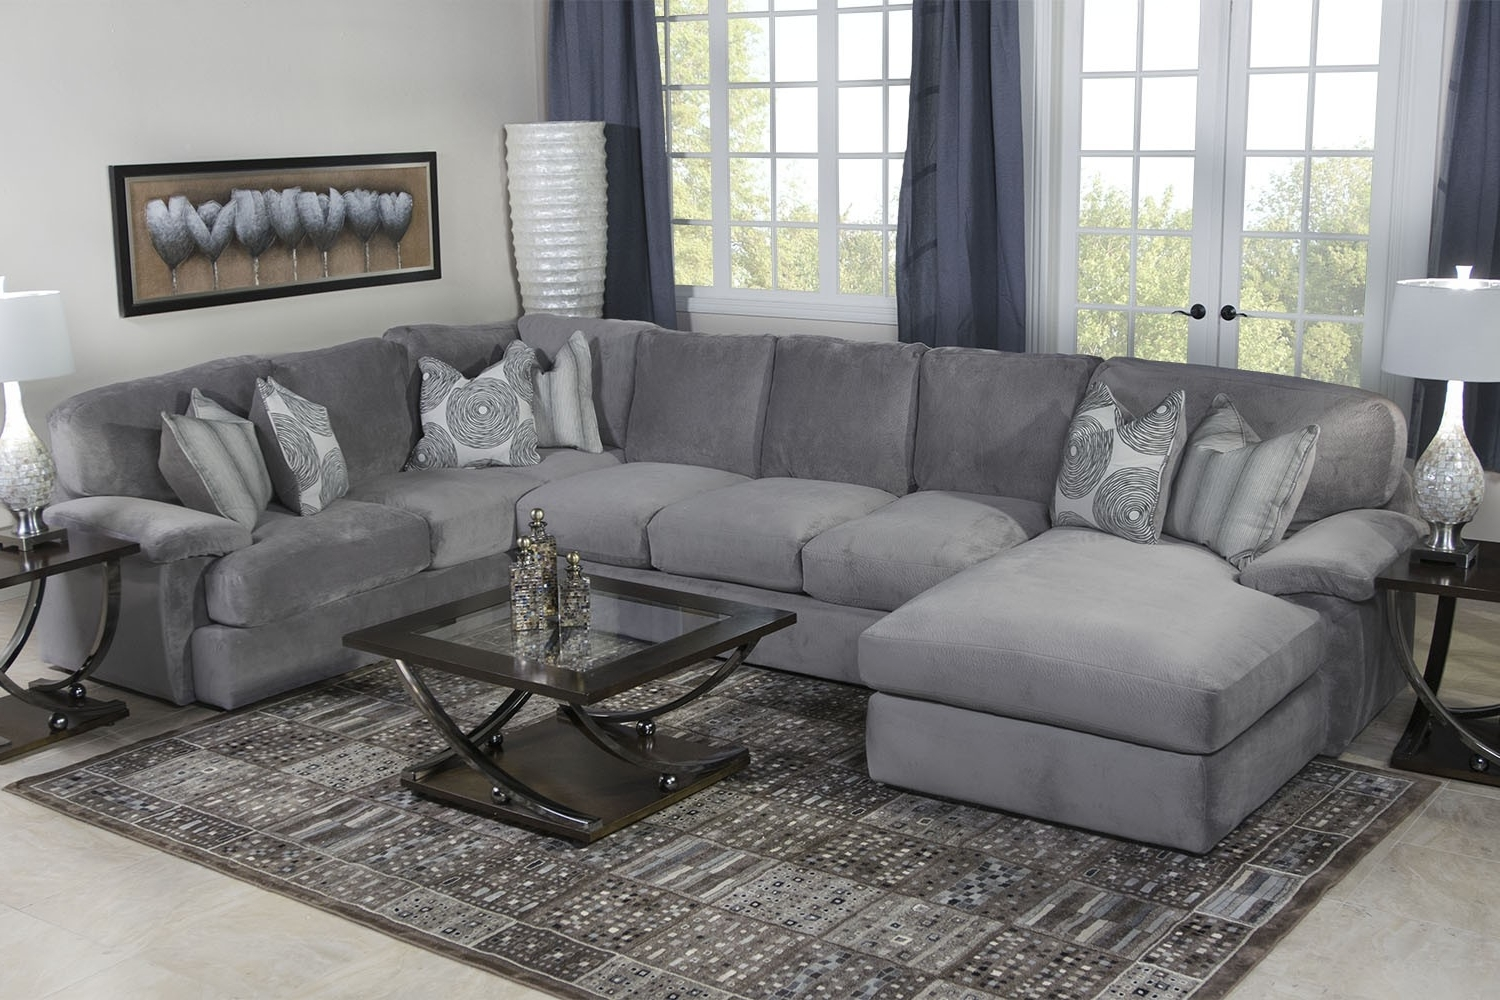 Media Room Sectional Sofas Throughout Most Current Key West Sectional Living Room In Gray Media Image  (View 7 of 15)